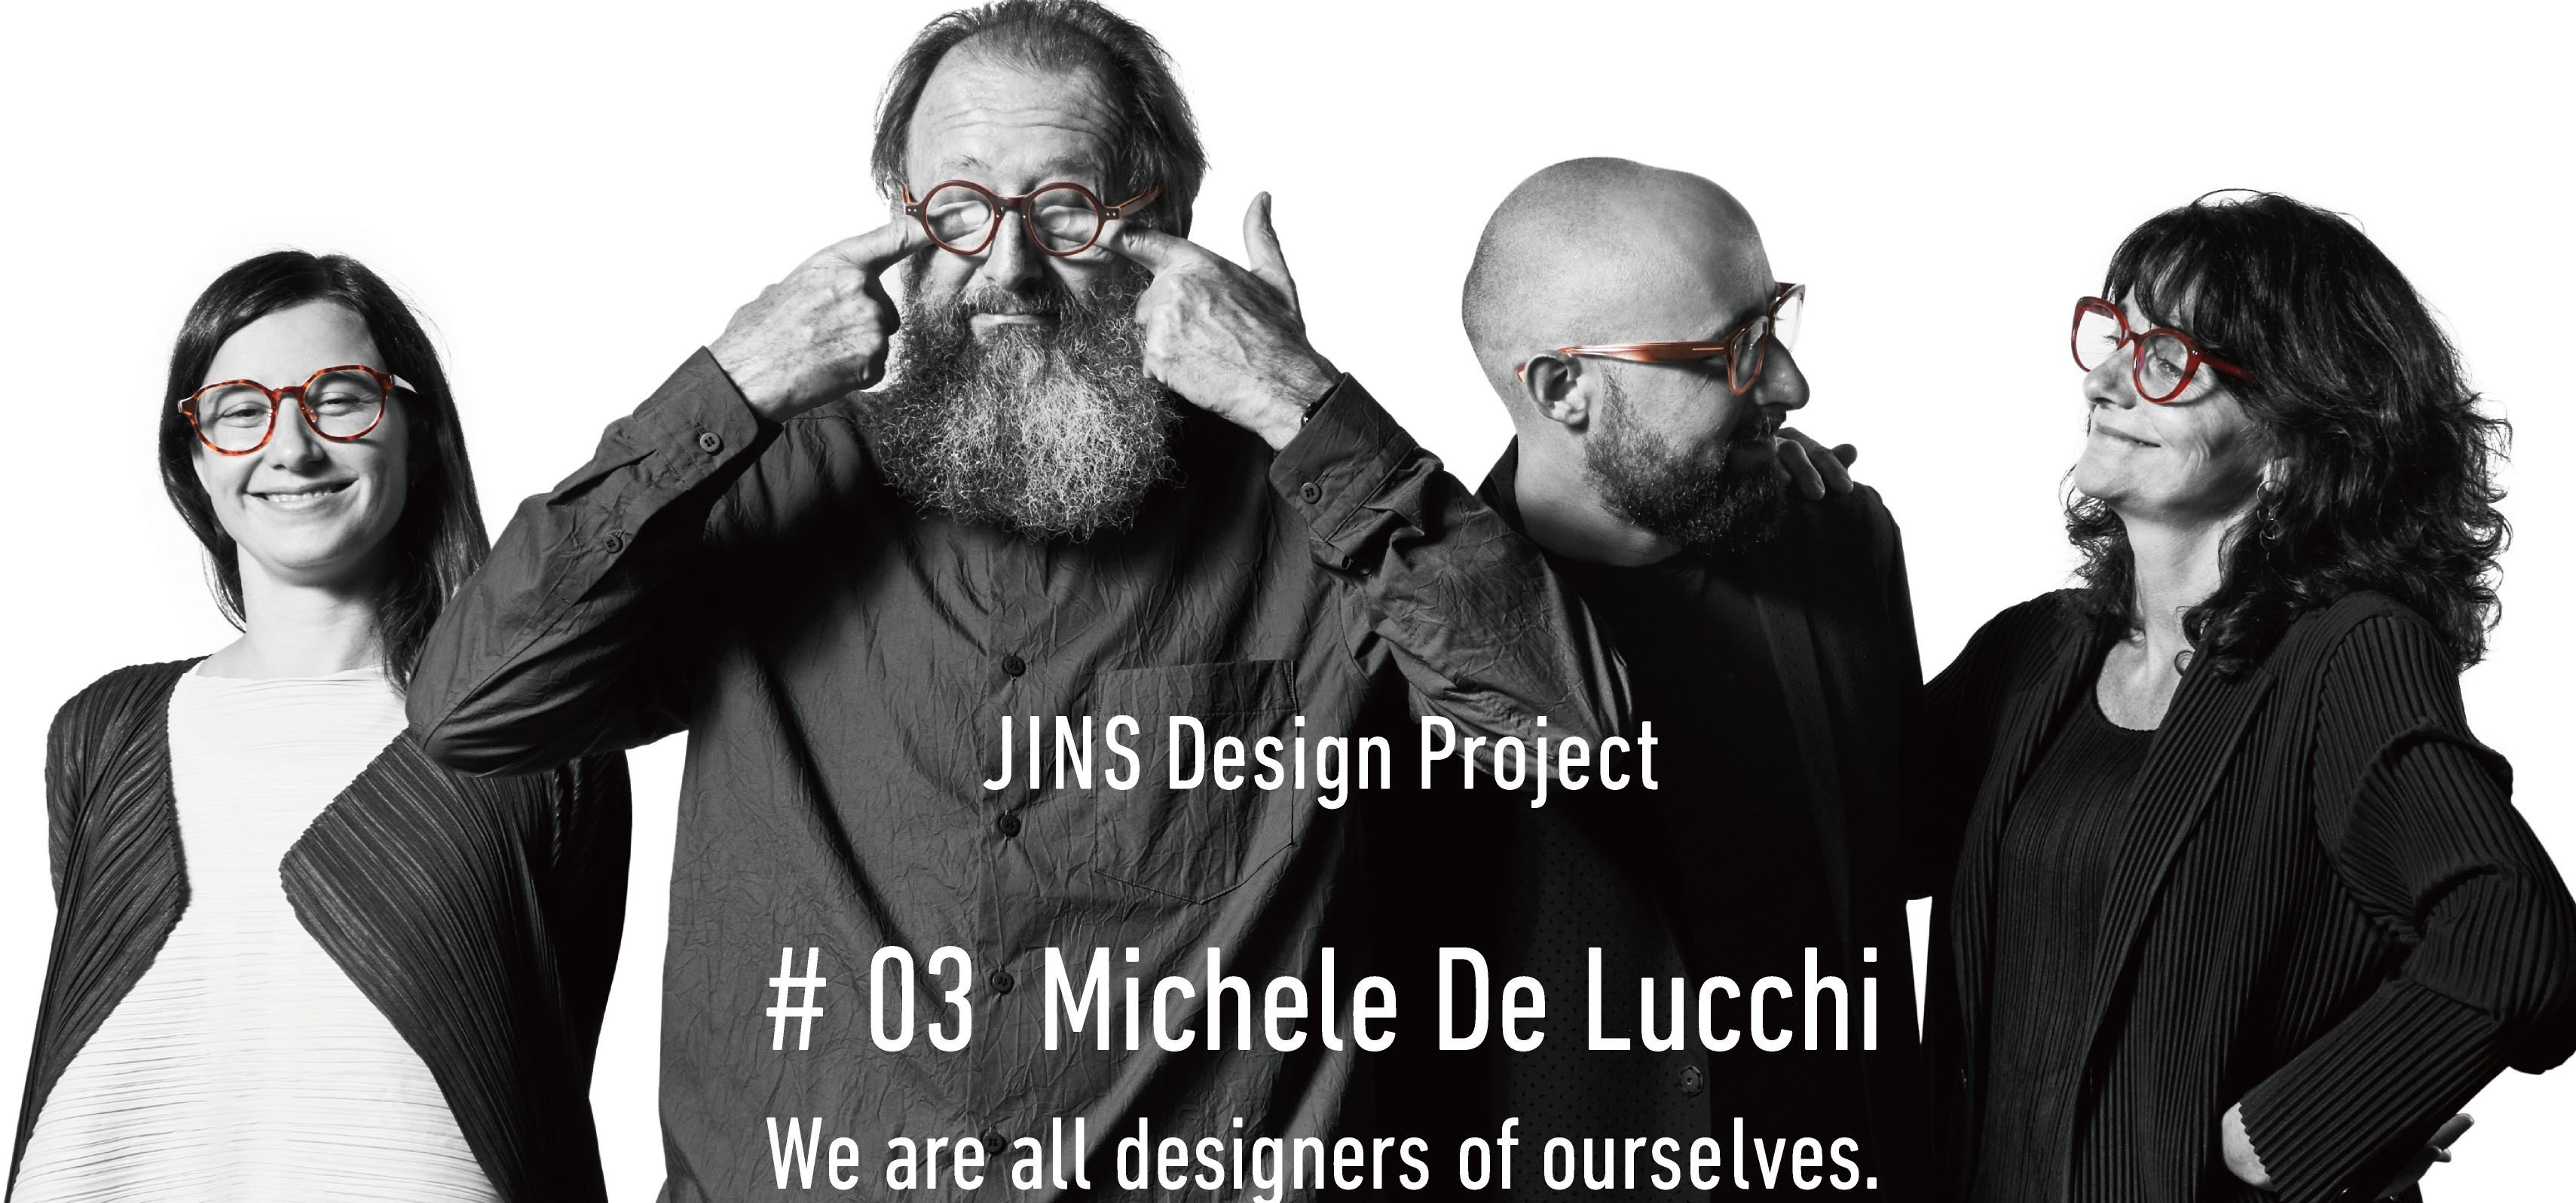 JINS Design Project - Michele De Lucchi